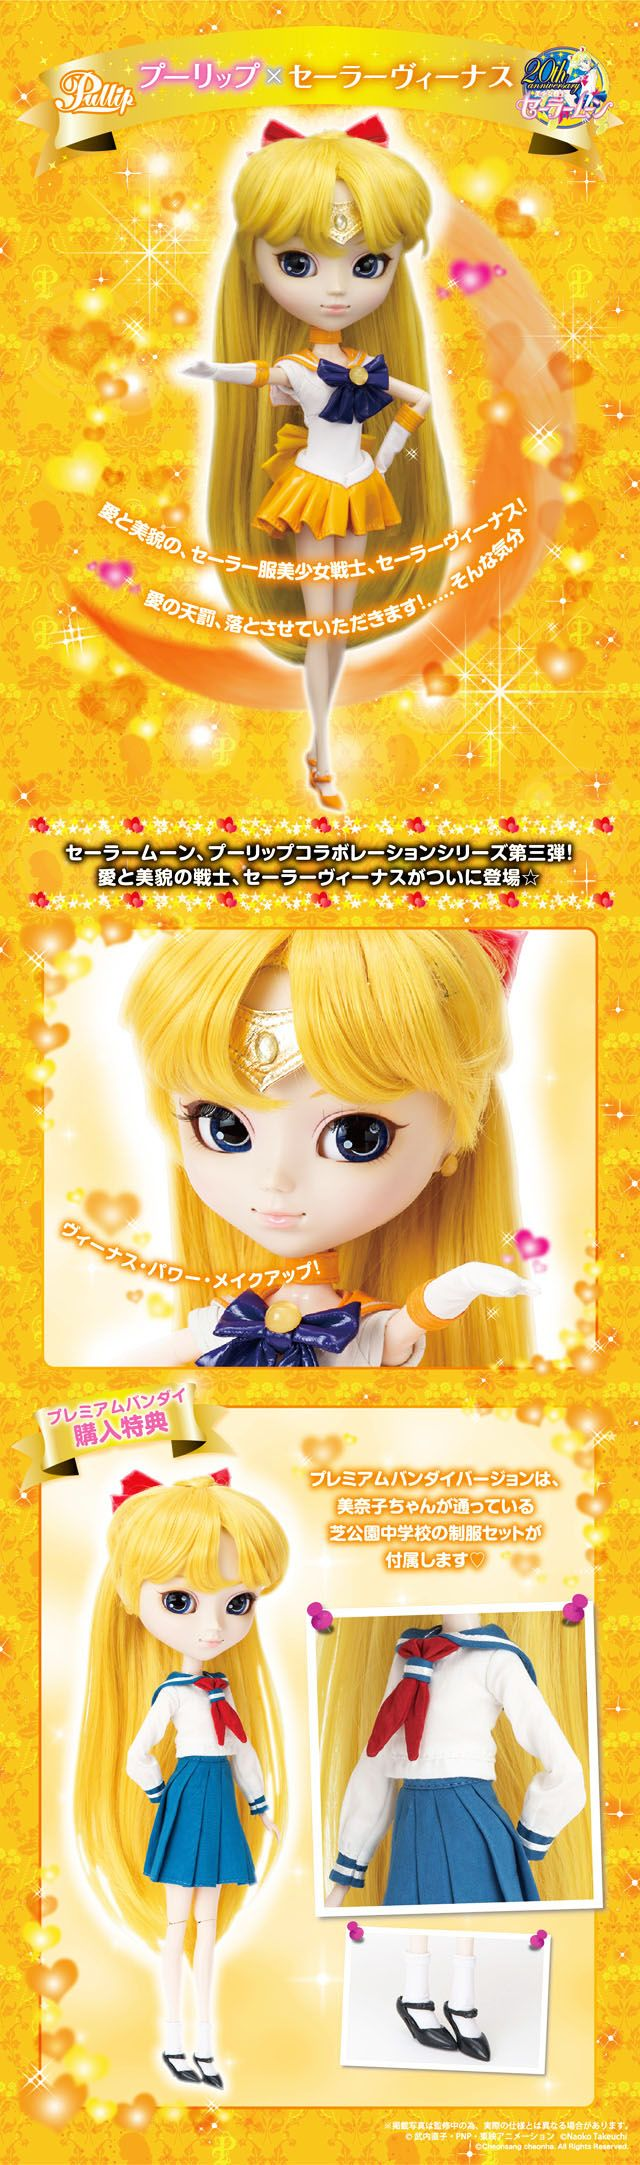 Sailor Moon Sailor Venus Pullip doll with pre-order exclusive Minako (aka Mina) school uniform, anime doll by Premium Bandai.  Third in the Sailor Moon Pullip collection, available November 2014, retail price 20,520 yen.  School uniform is a Premium Bandai exclusive, available only if pre-ordered through PB.  Ajems <3's!  #sailormoon #sailorvenus #premiumbandai #sailormoonpullip #pullip #pullipdoll #sailorvenuspullip #sailormoondoll